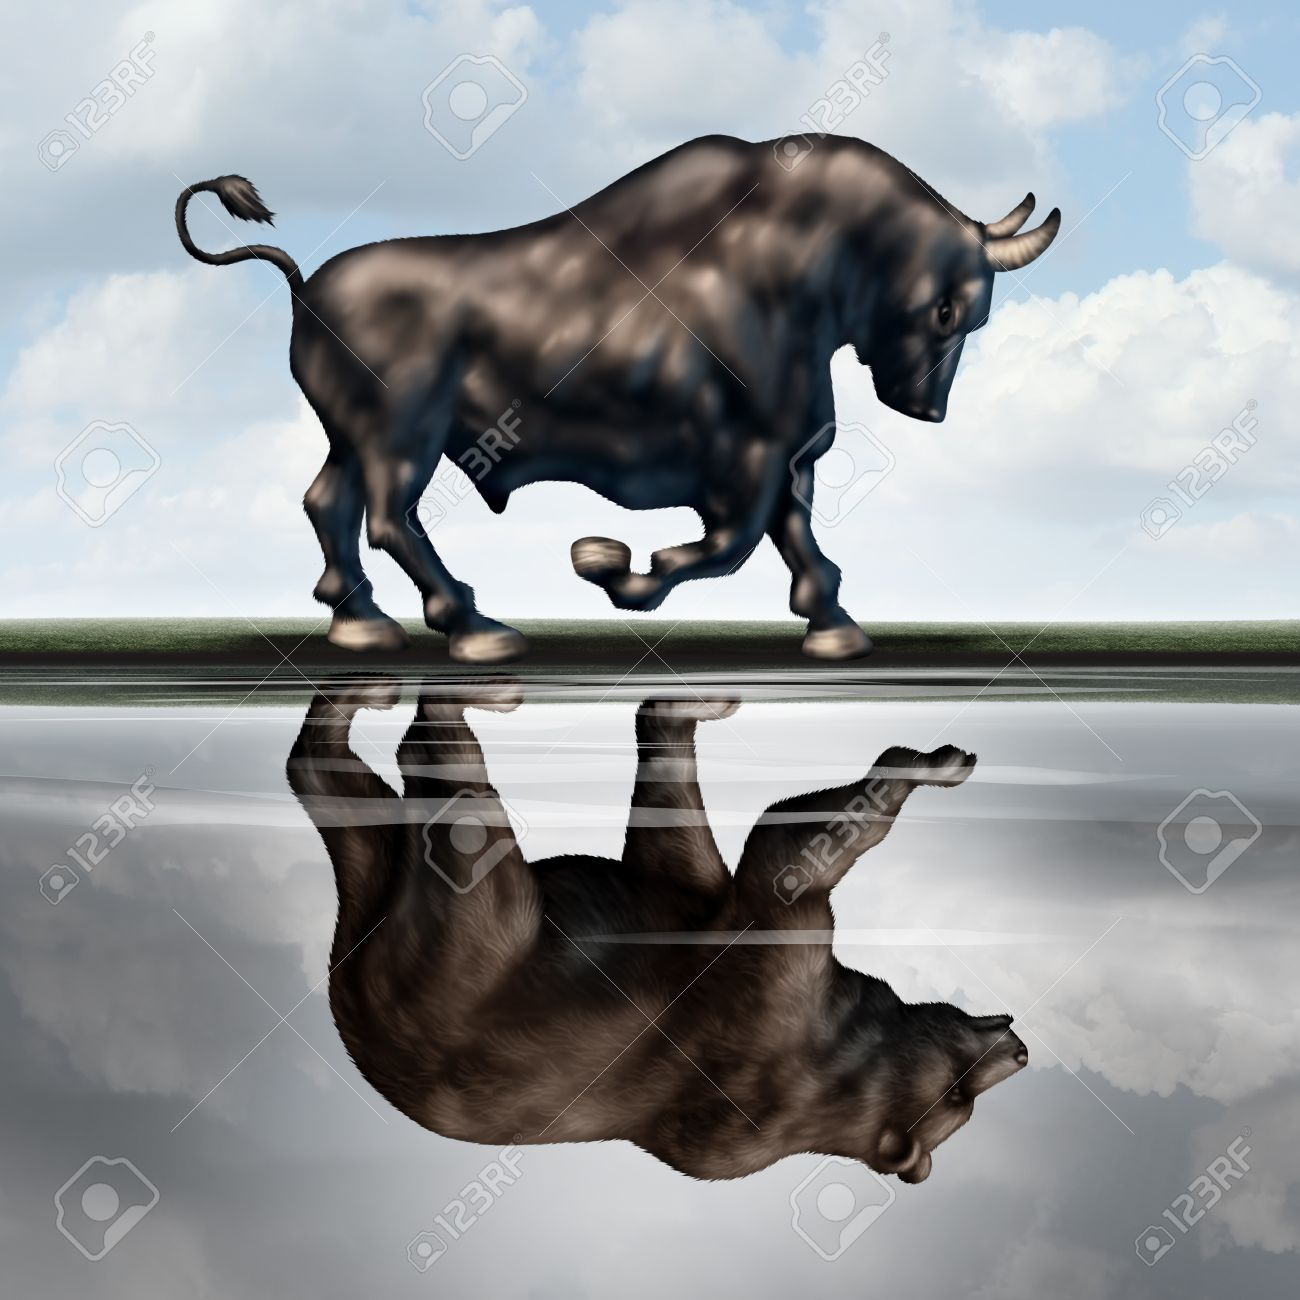 Investing warning signs as a financial stock market metaphor with a bull creating a reflection in the water of a bear as an economic downturn or recession forecast in a 3D illustration style. Standard-Bild - 55999960